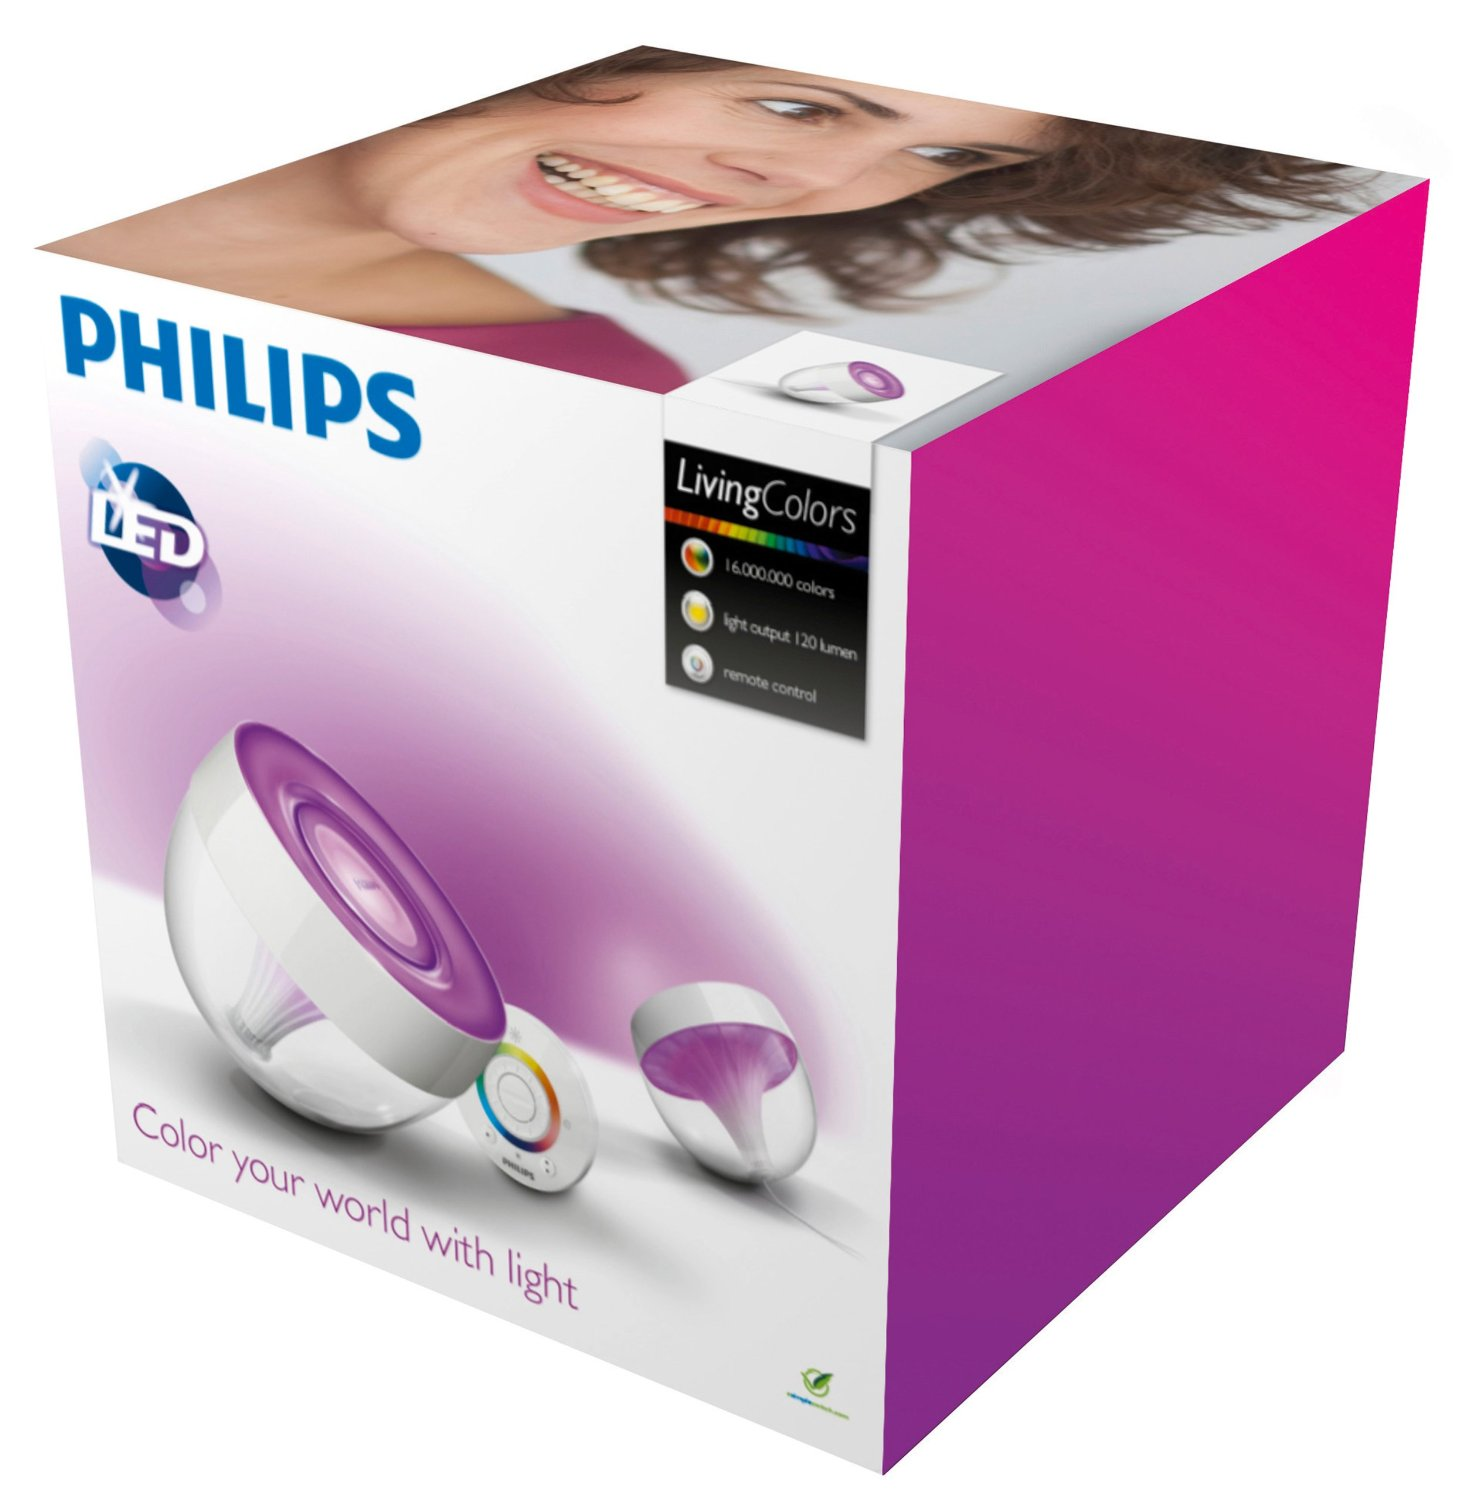 Philips LivingColors Iris LED colour changing table lamp clear remote control Thumbnail 2